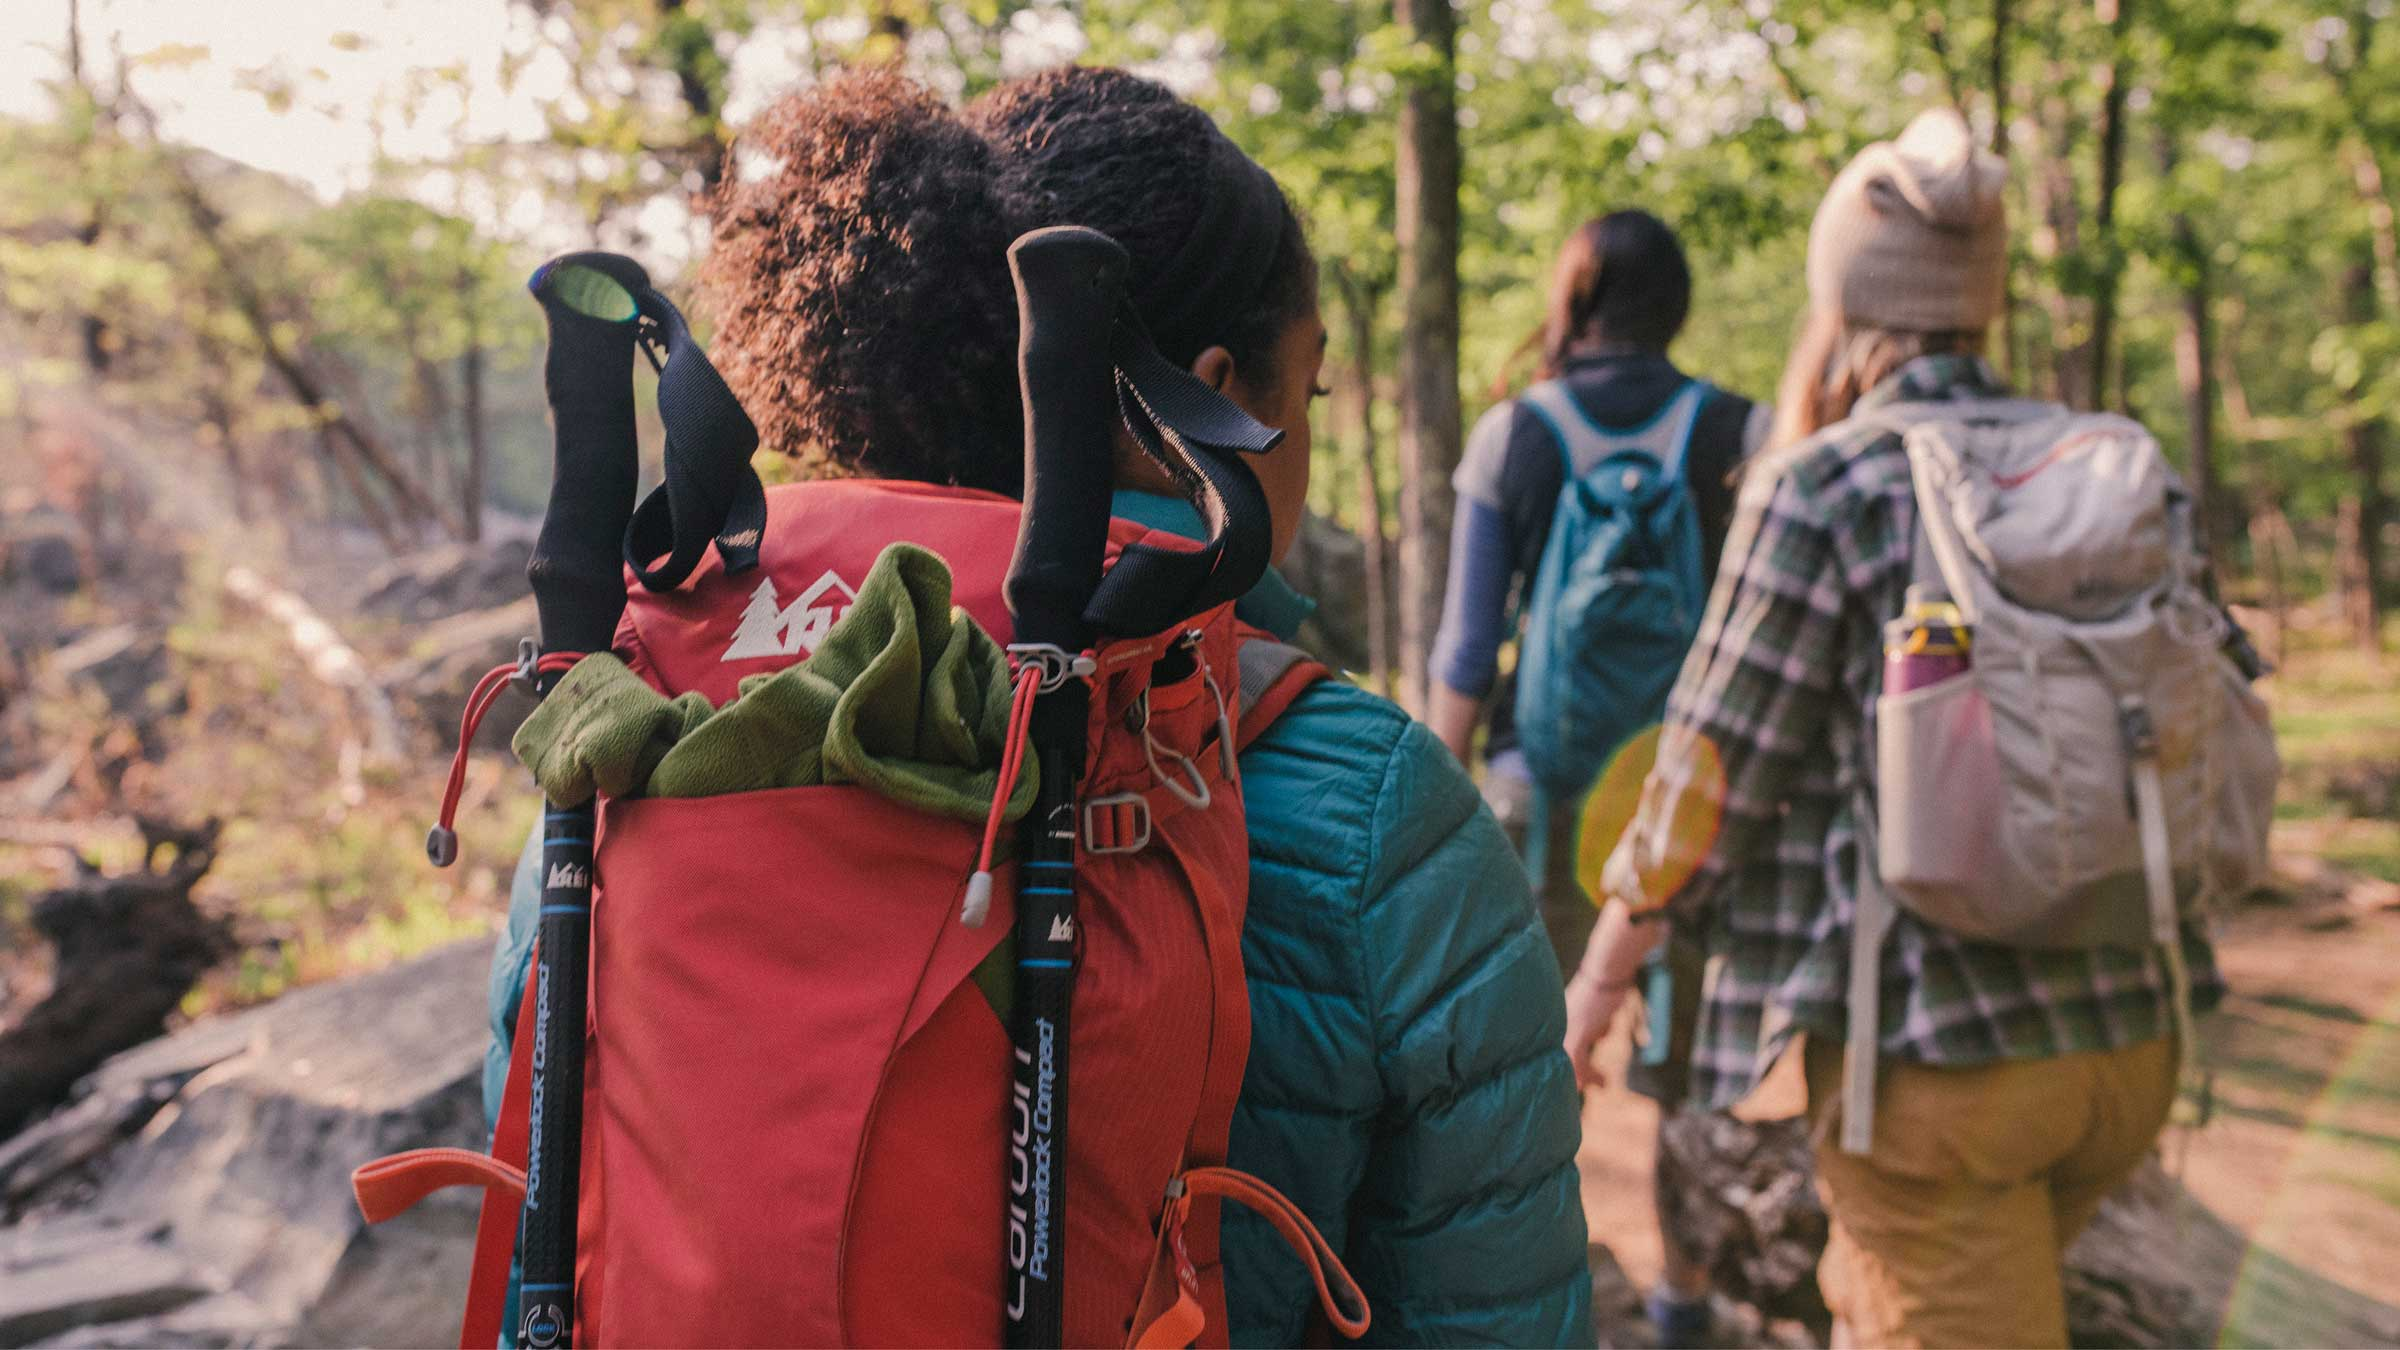 5 Common Backpacking Mistakes That Can Cost You Your Life